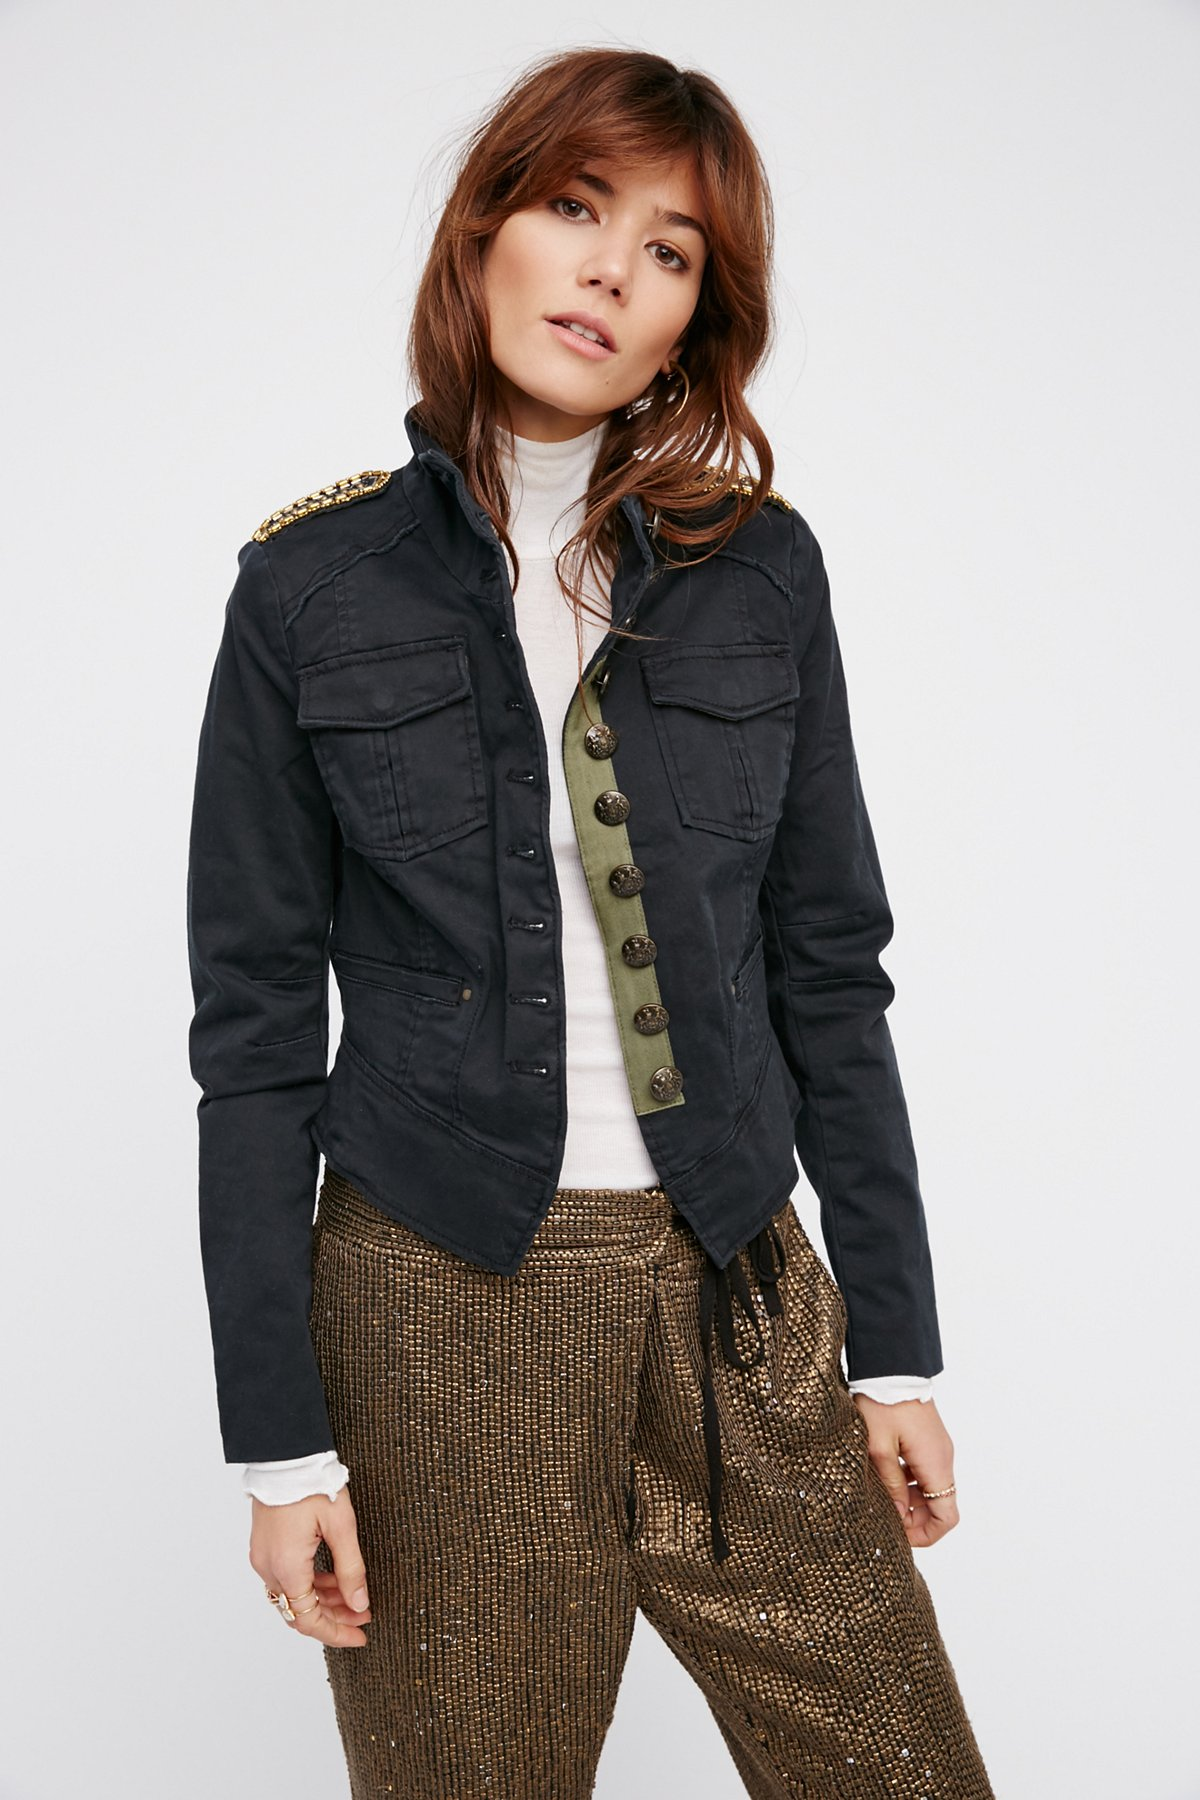 Shrunken Officer Jacket